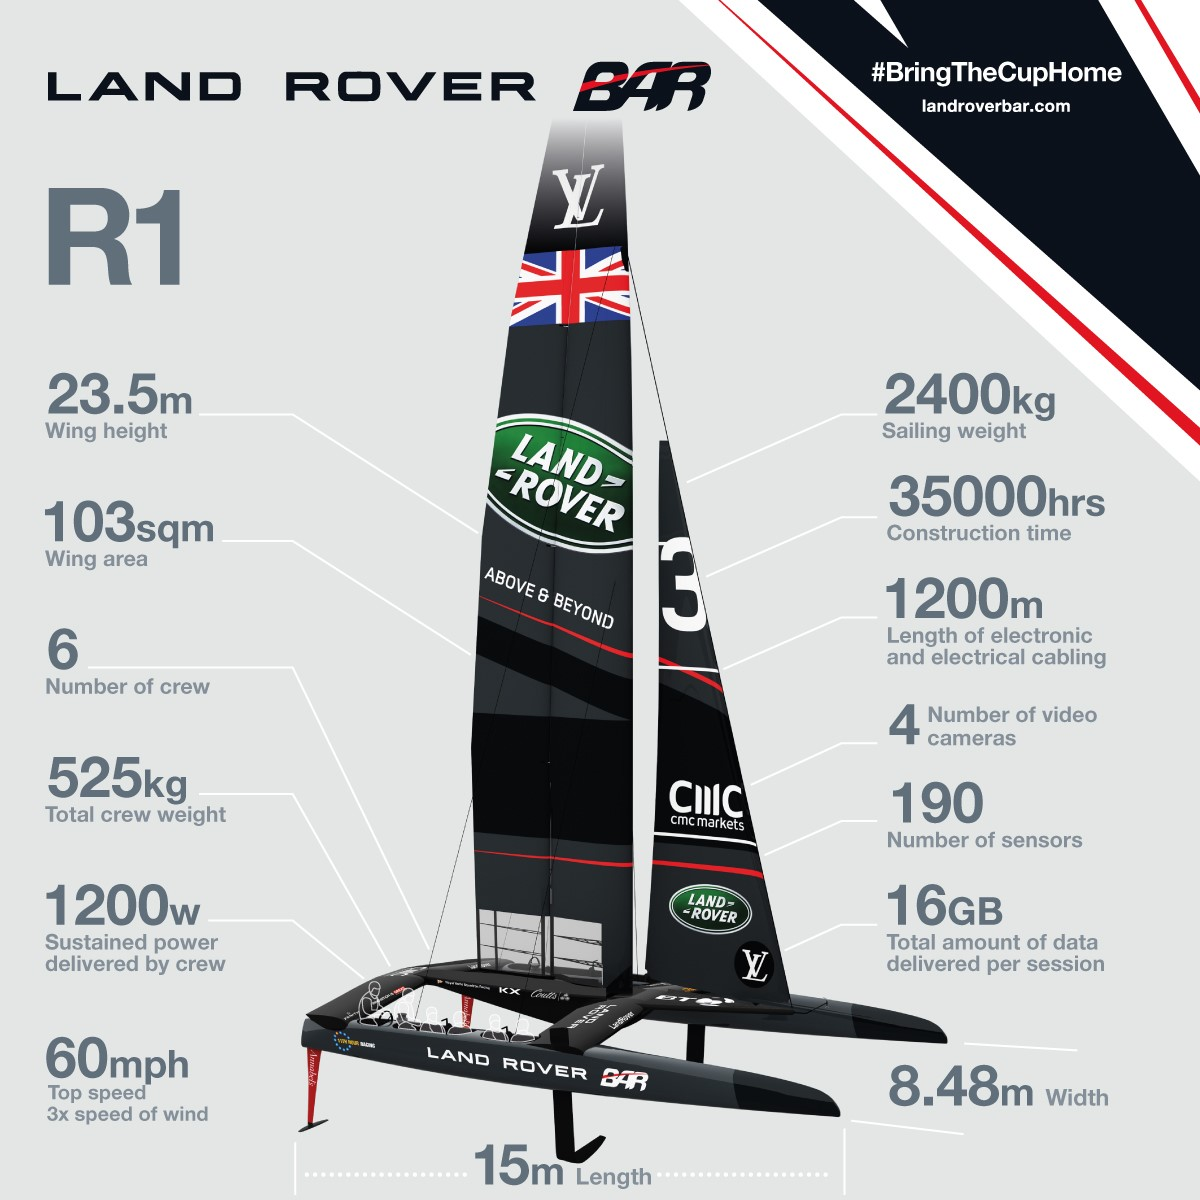 Land Rover BAR boat 2017 stats infograpic.jpg